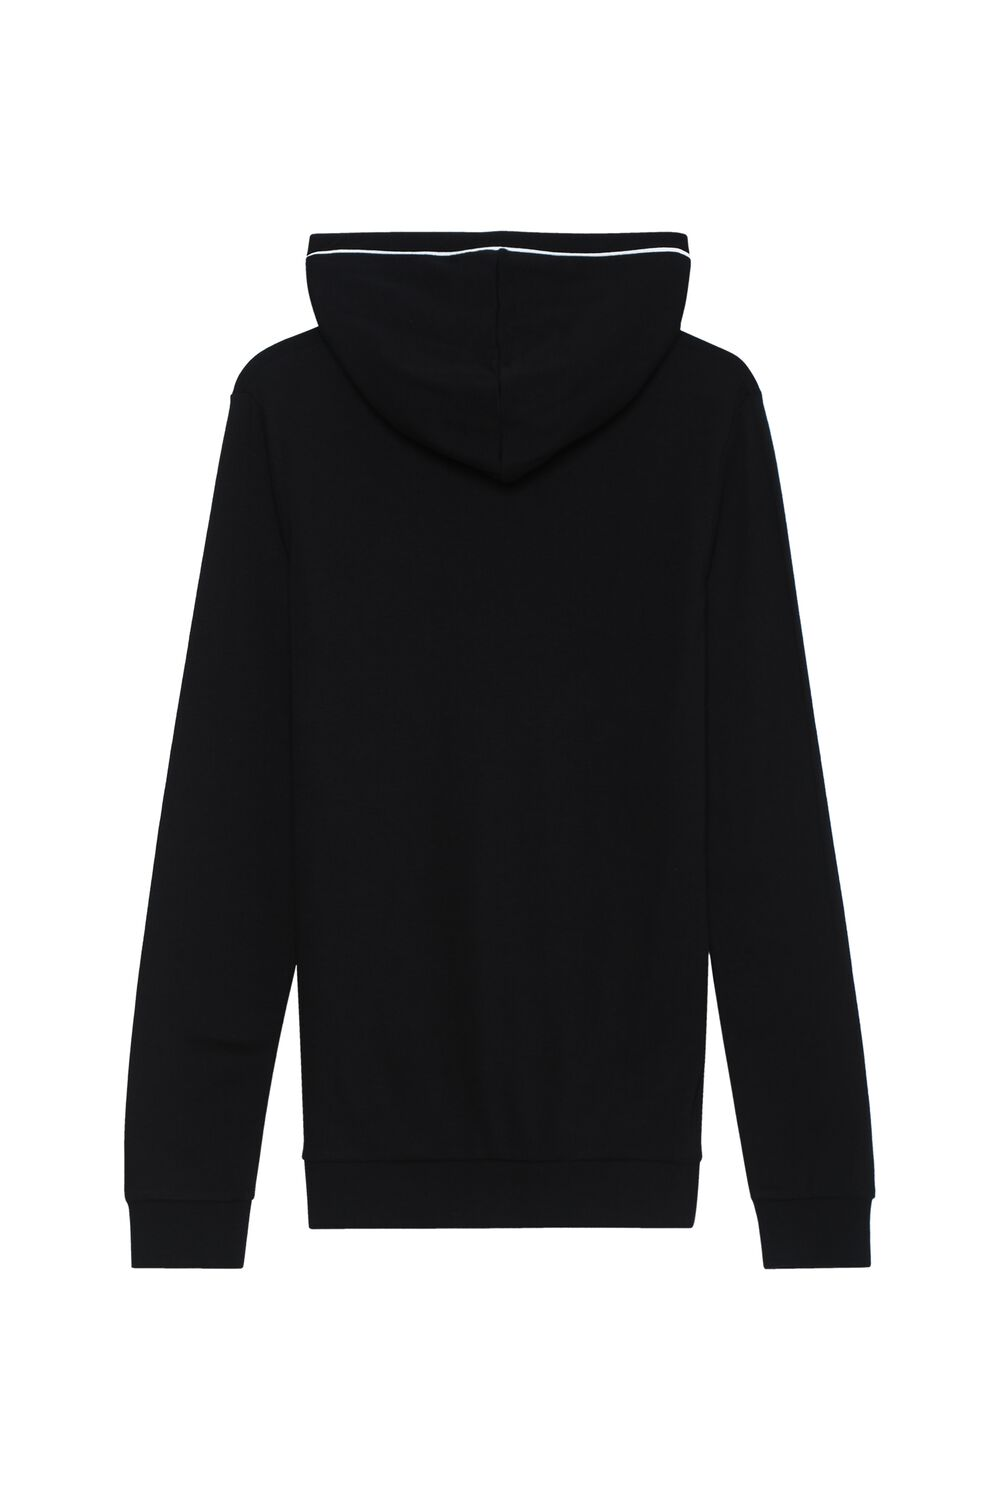 Long-Sleeved Hooded Top With Zip and Piping Details